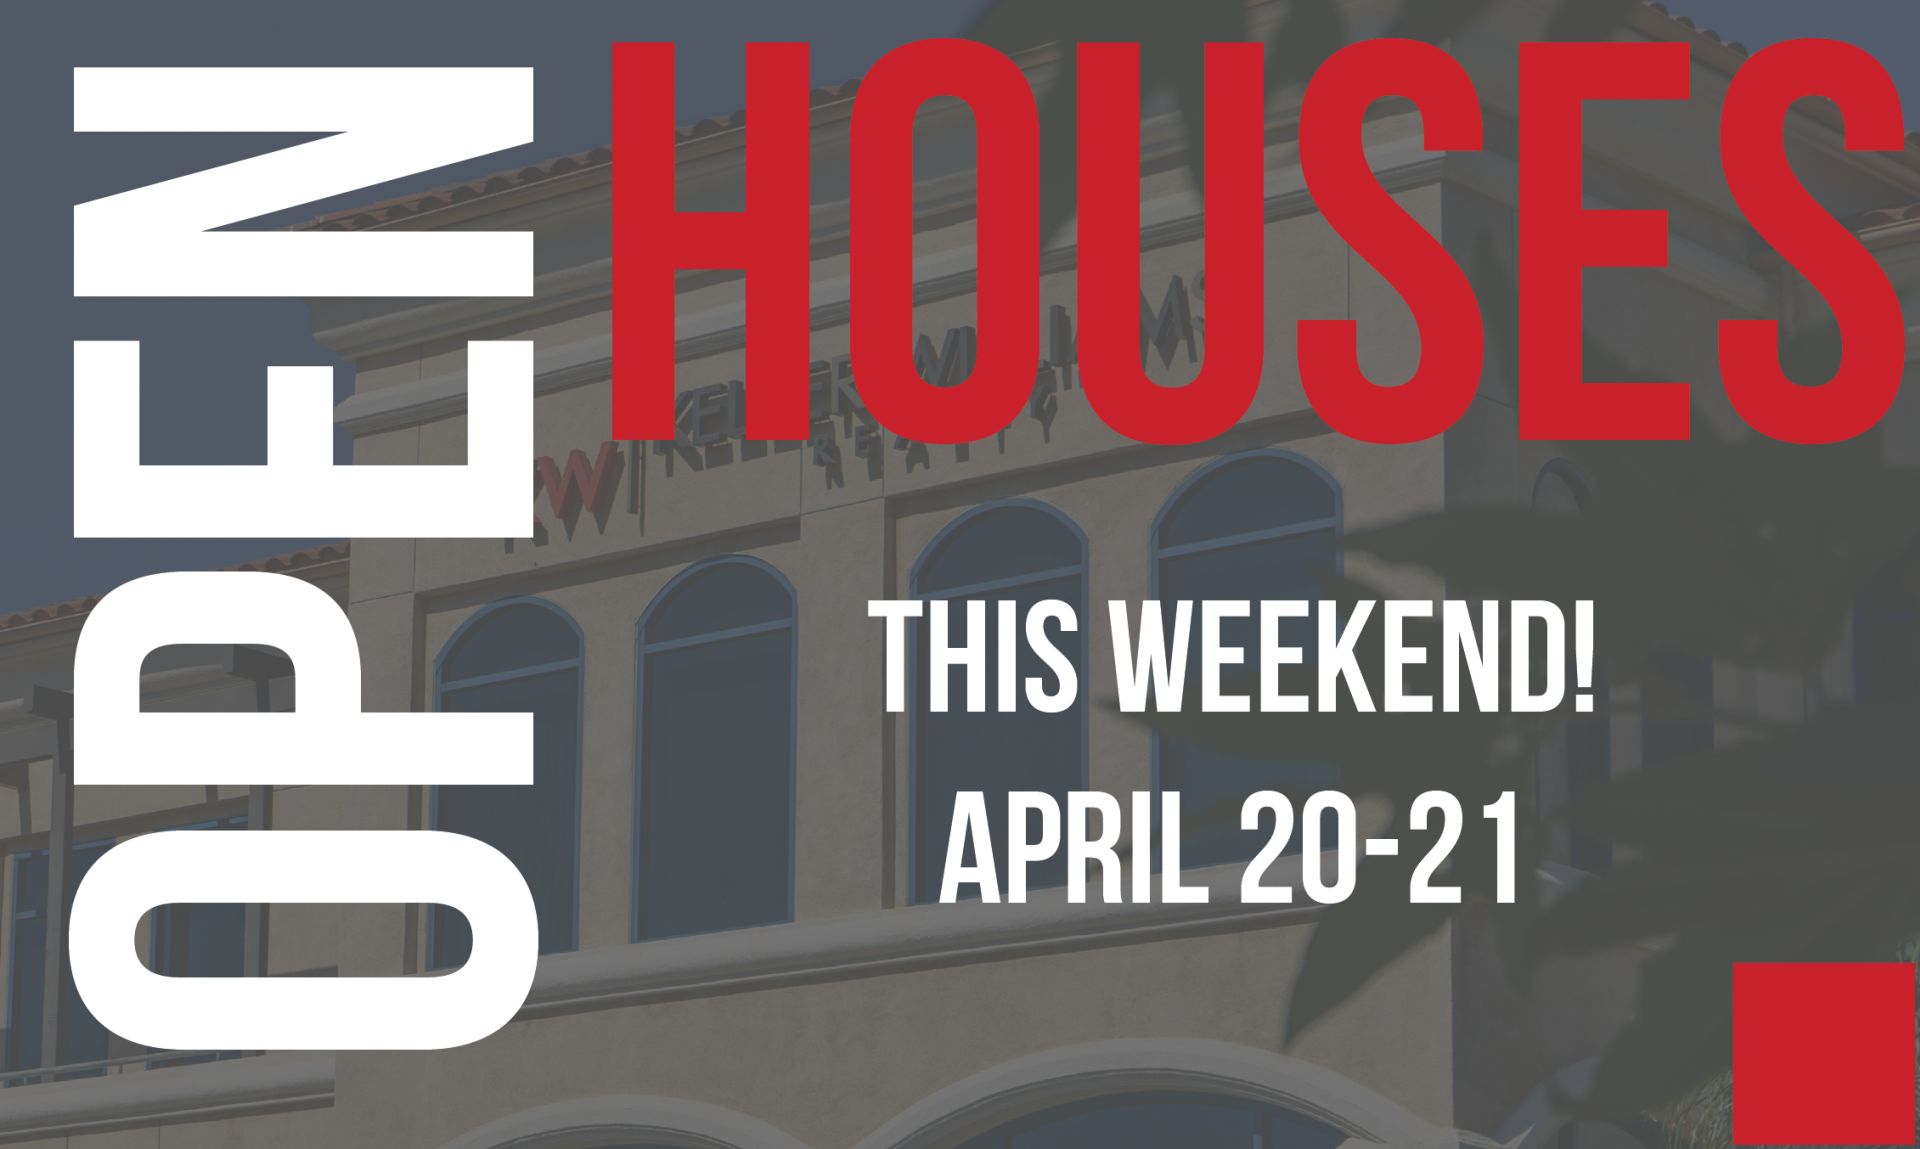 Open Houses This Weekend! April 20-21